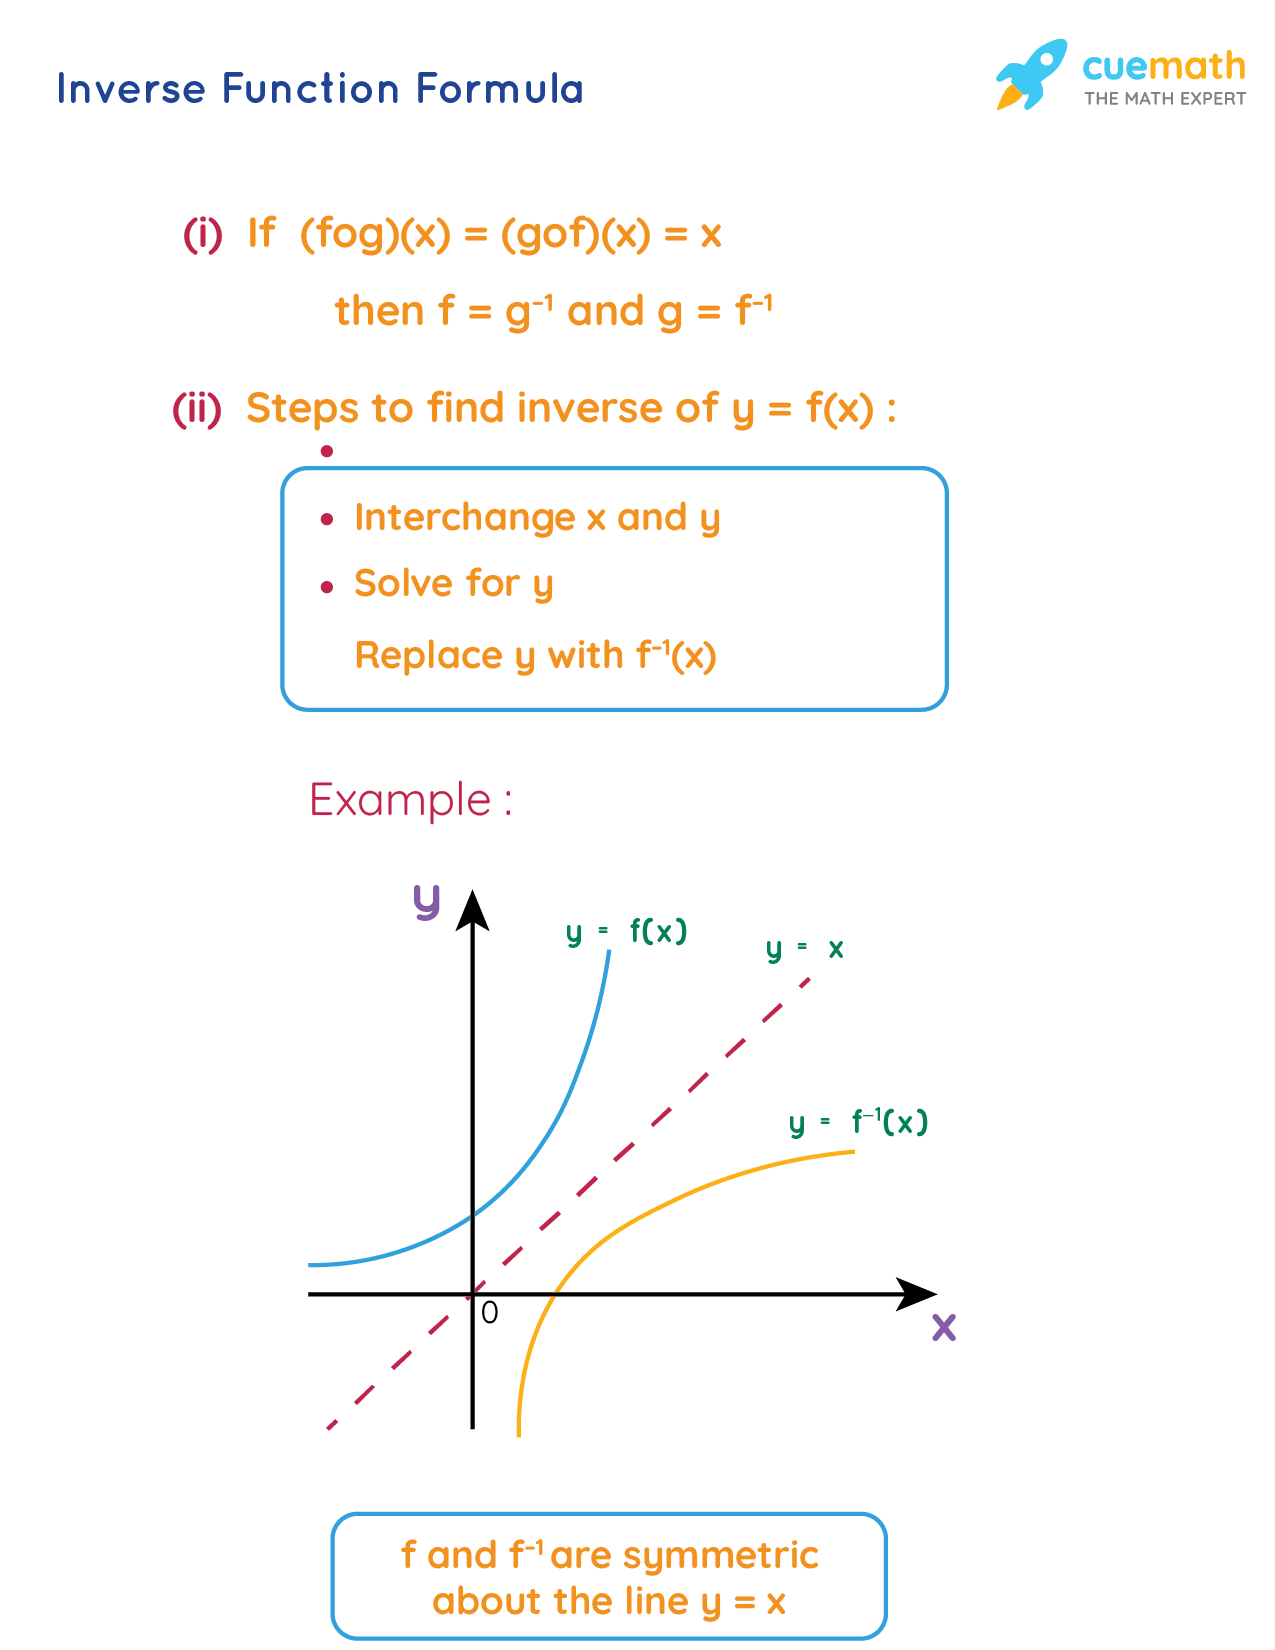 Graph of Inverse Function